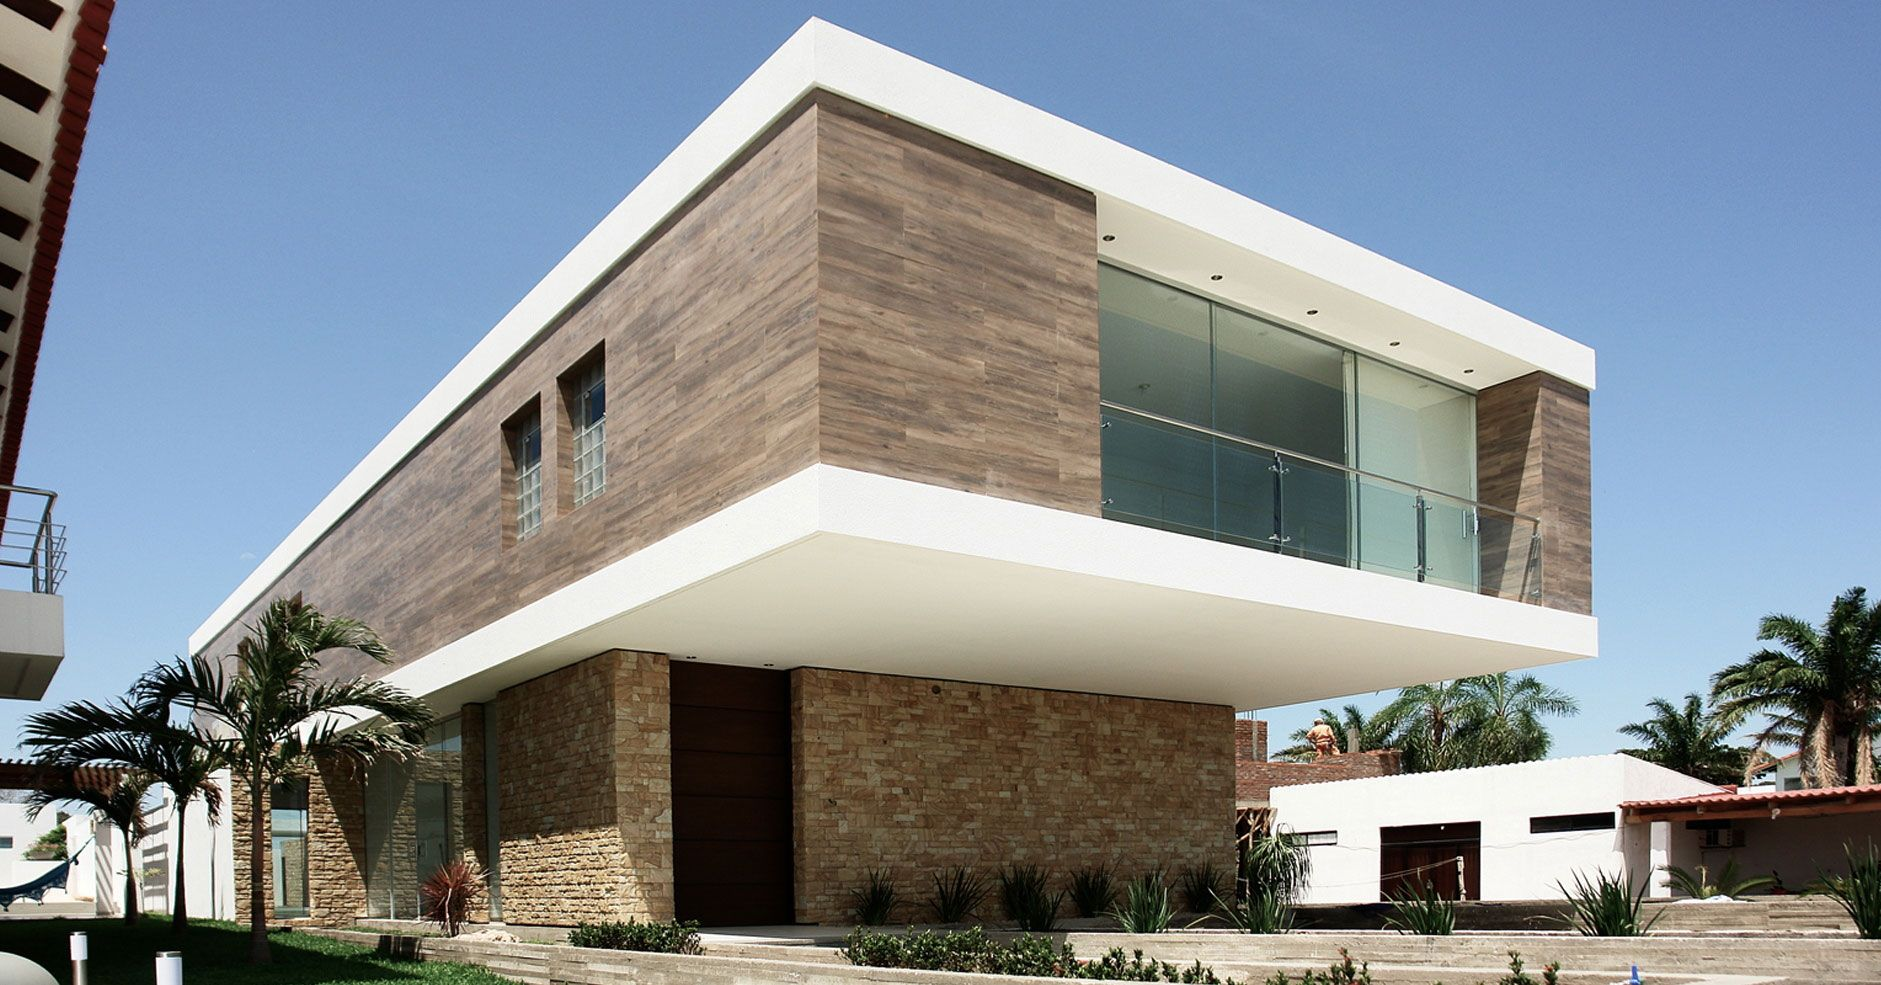 C house by sommet asociados 2